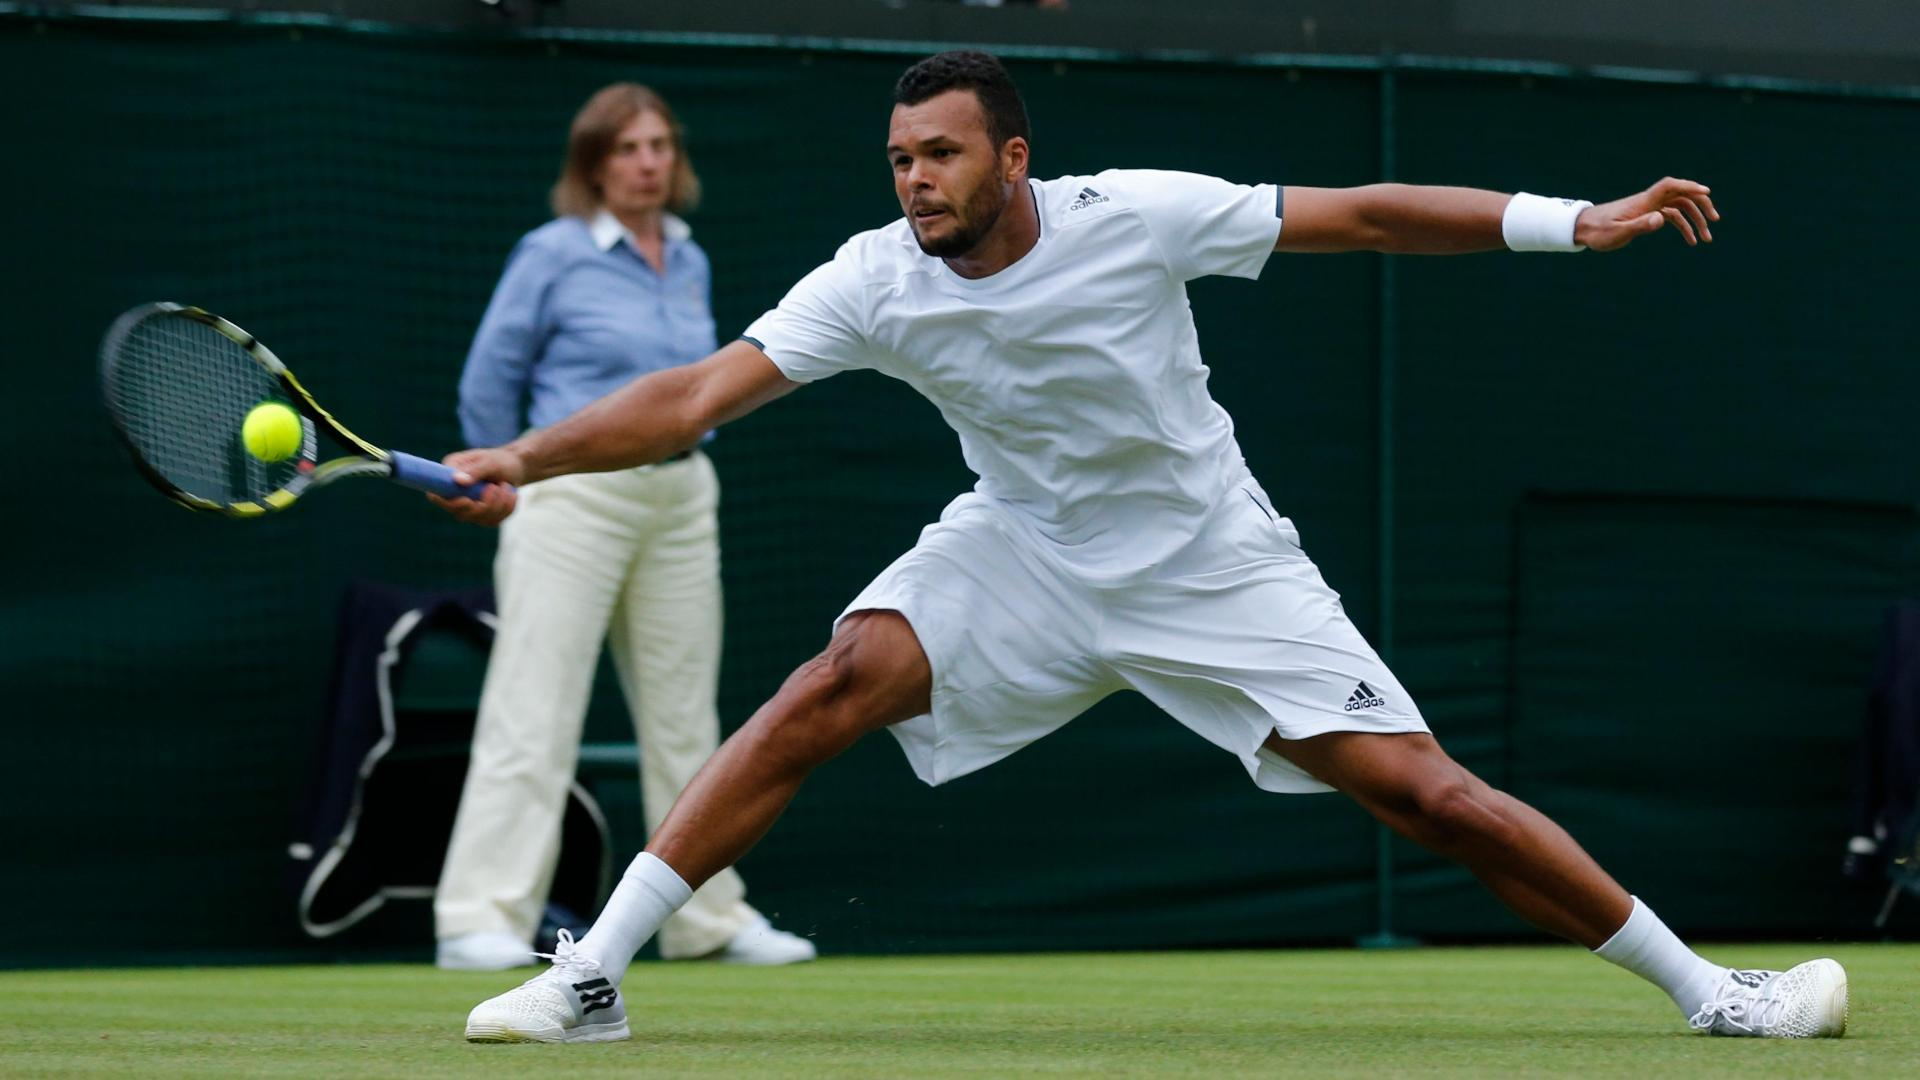 Tsonga: It's Not Easy